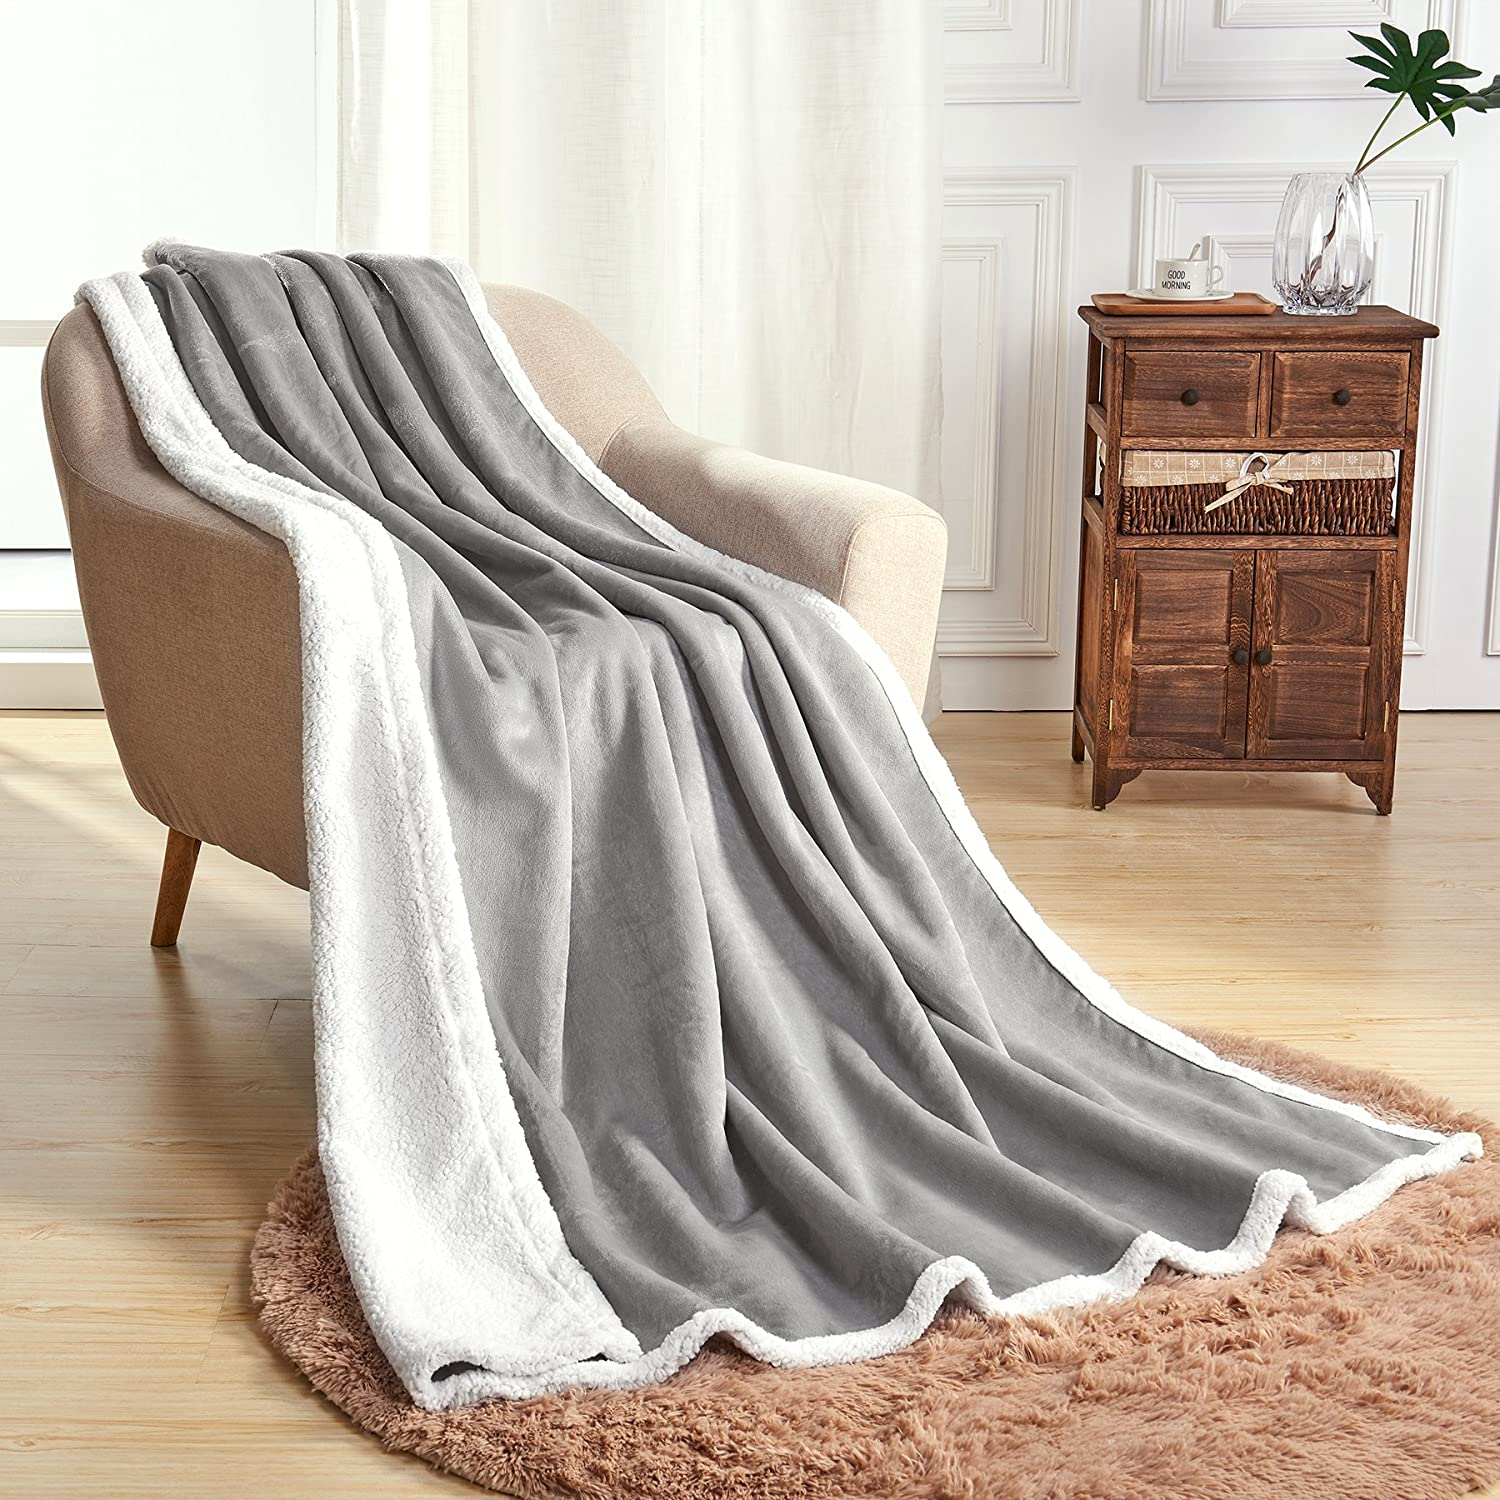 SyMax Sherpa Soft Reversible Warm Fluffy Microfiber Summer Blanket for Bed Or Couch(Throw, Light Gray)